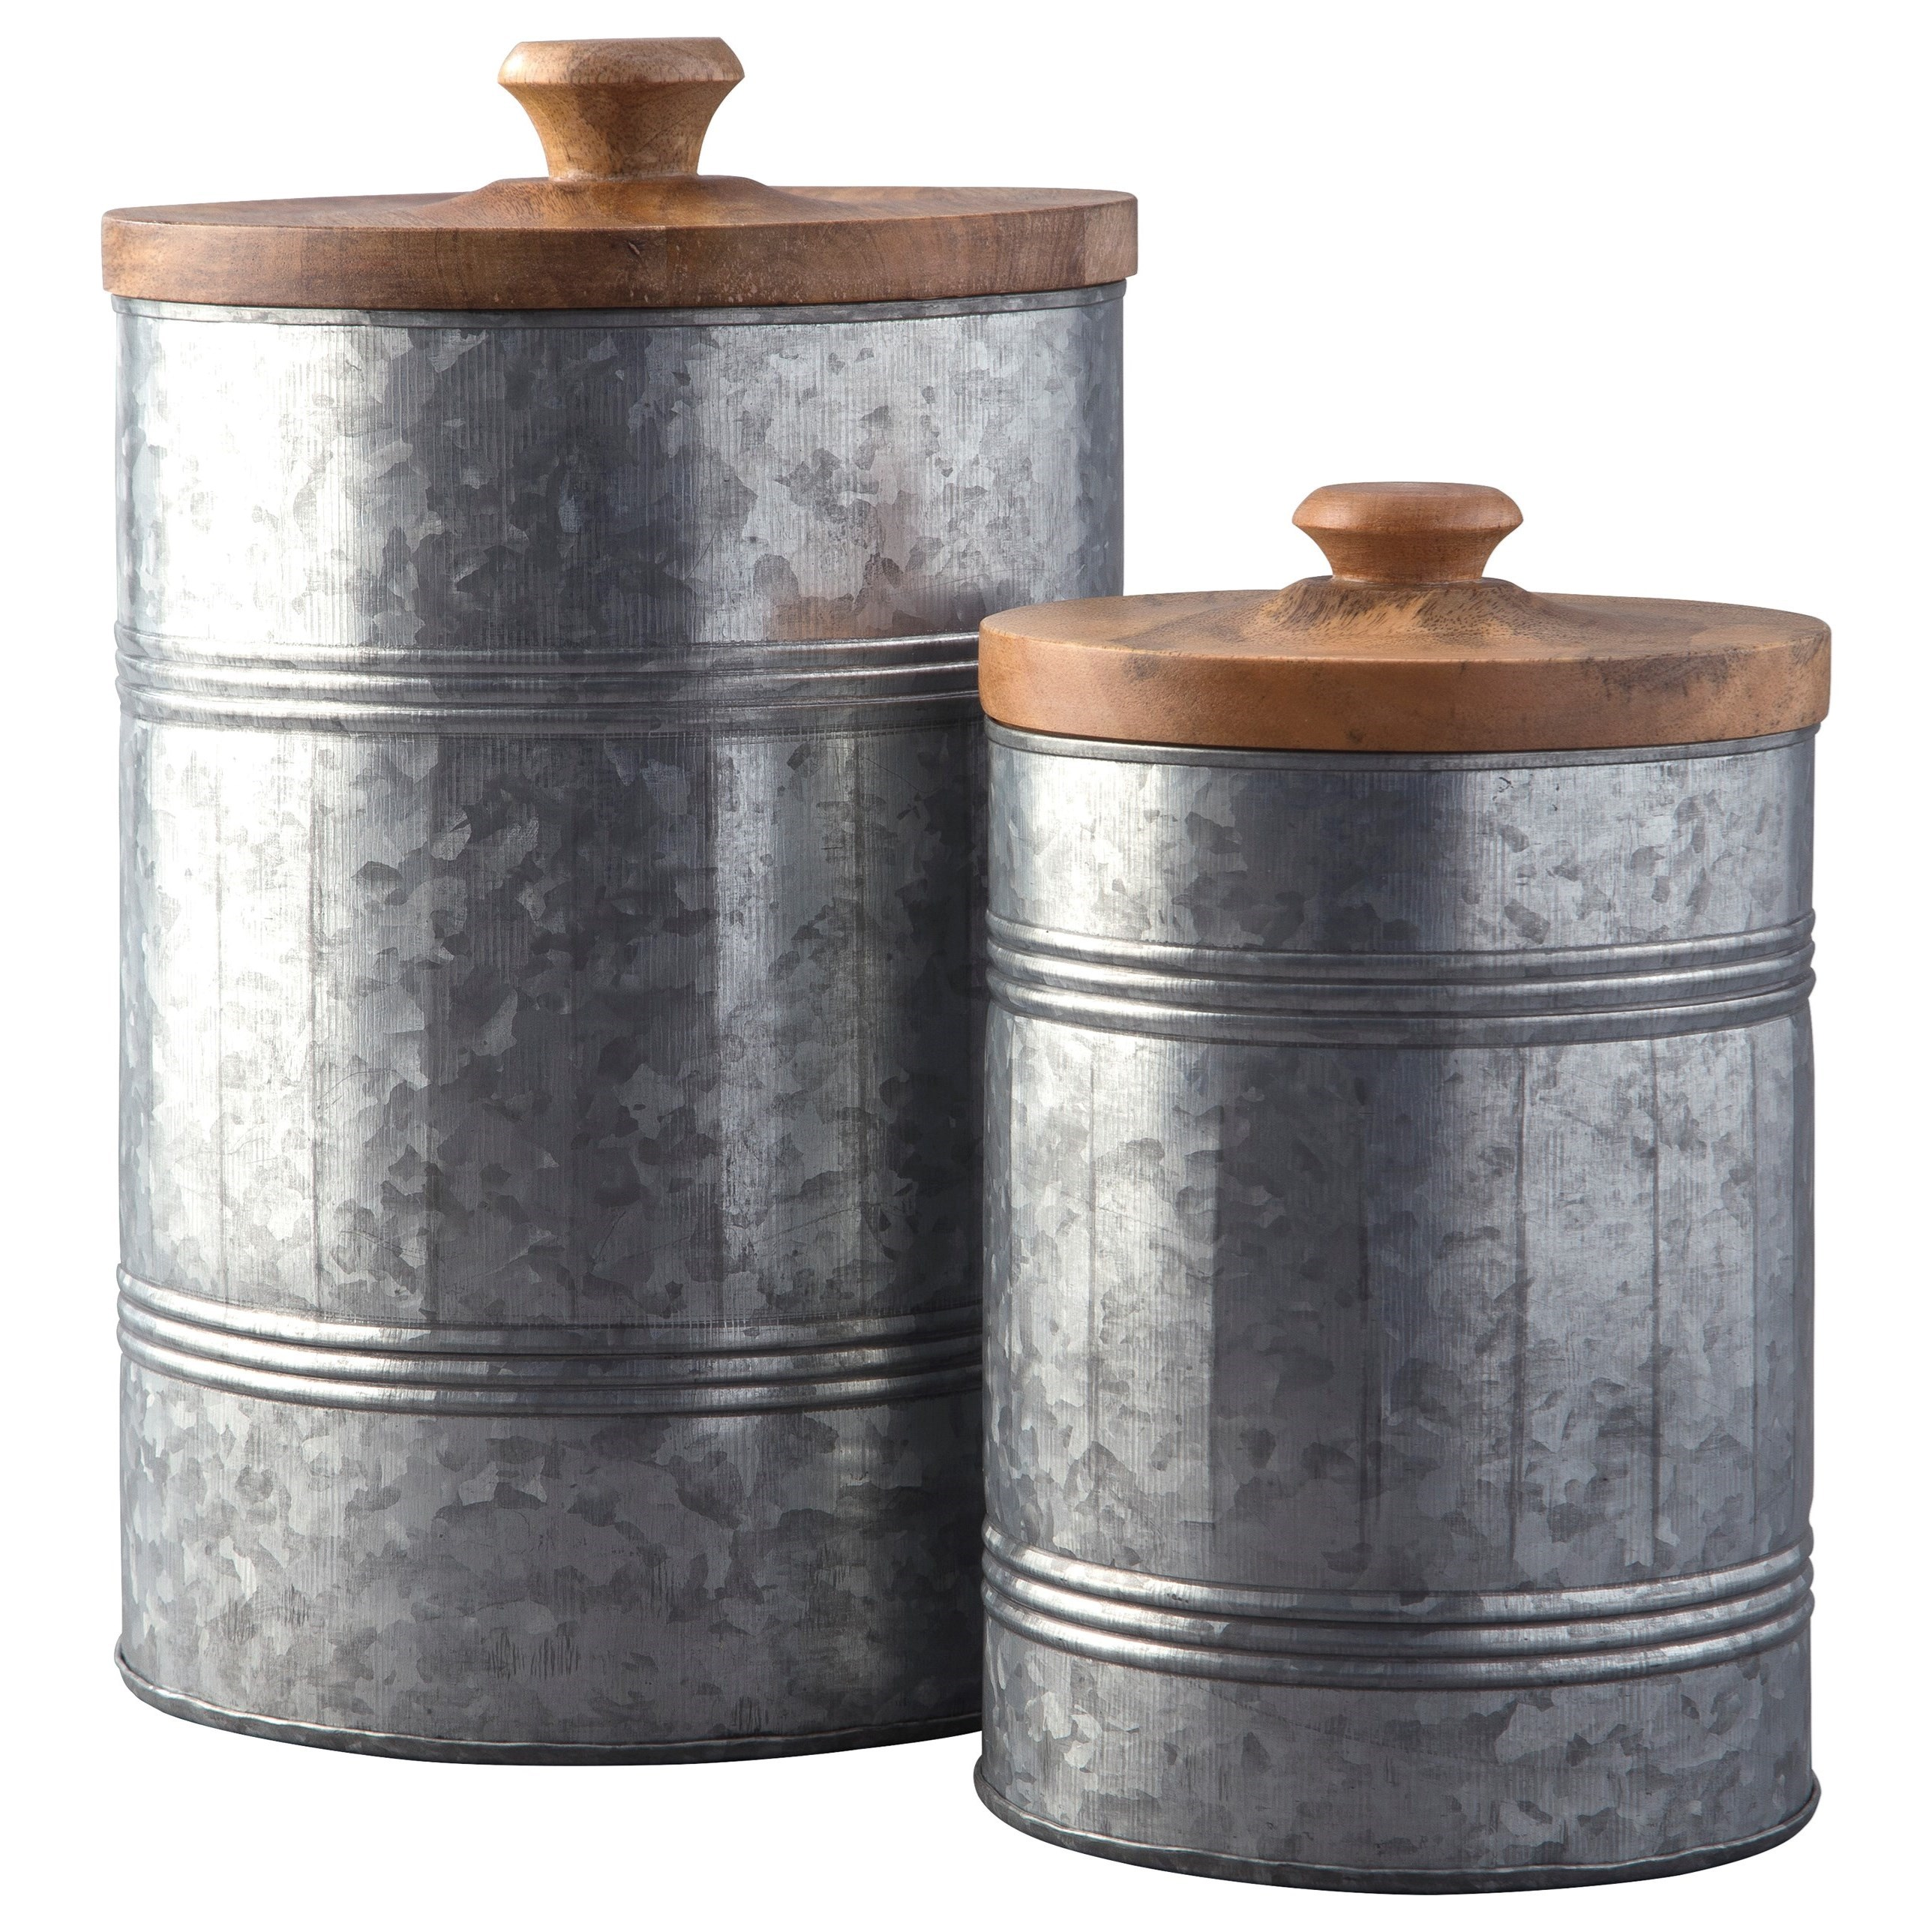 Accents Divakar Antique Gray Jar Set by Signature Design by Ashley at Furniture and ApplianceMart